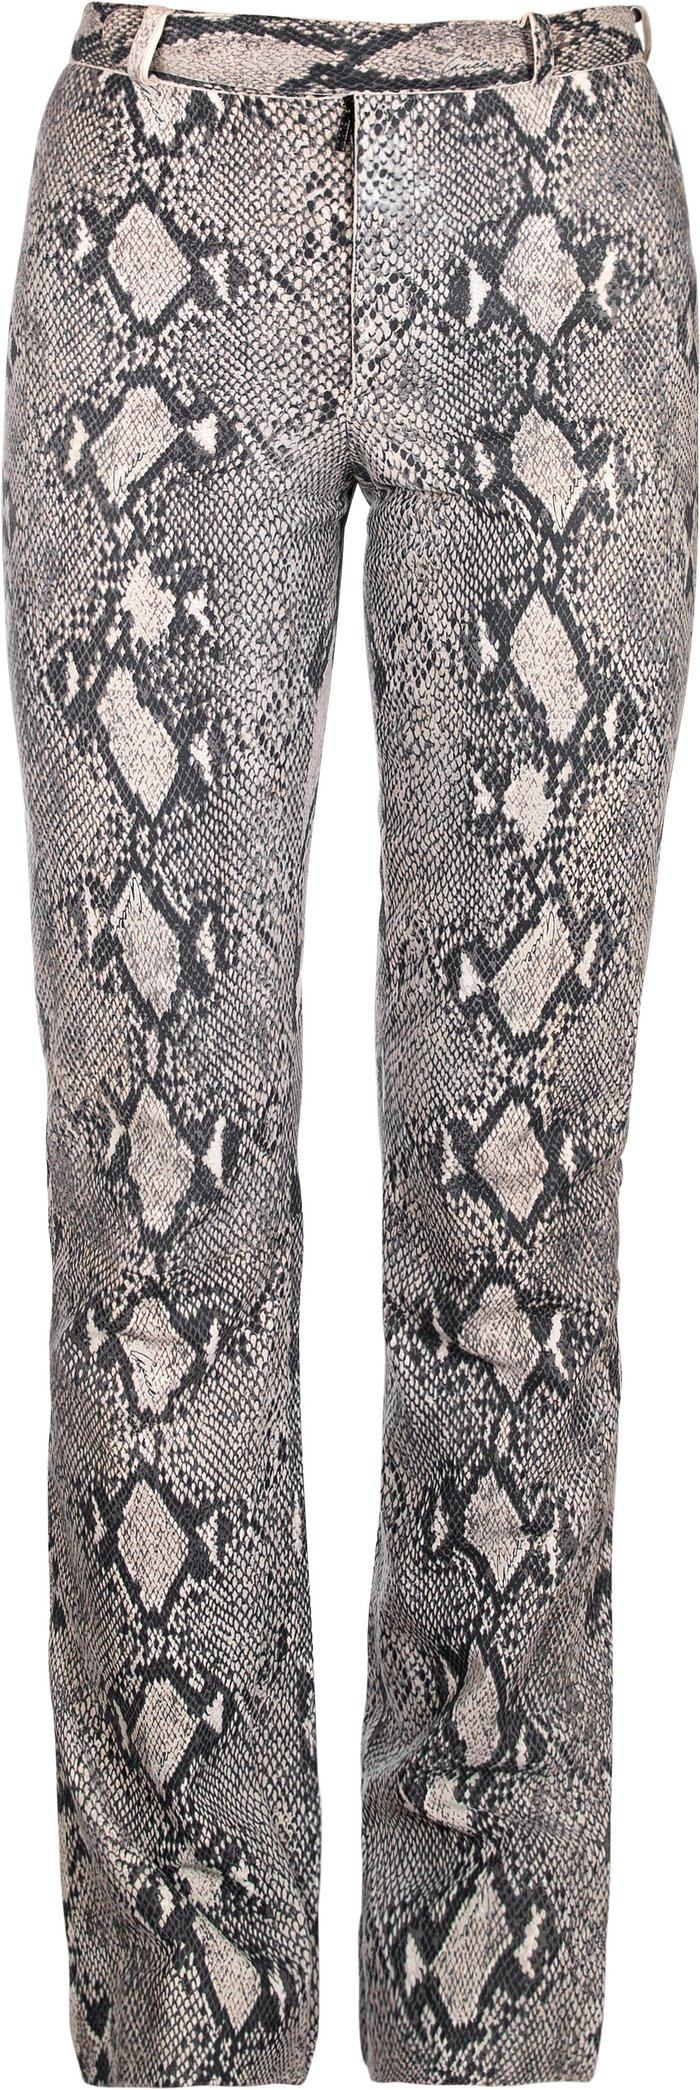 Spring 2000 Runway Python Printed Leather Pants by Gucci, available on elcycervintage.com for $790 Kim Kardashian Pants Exact Product